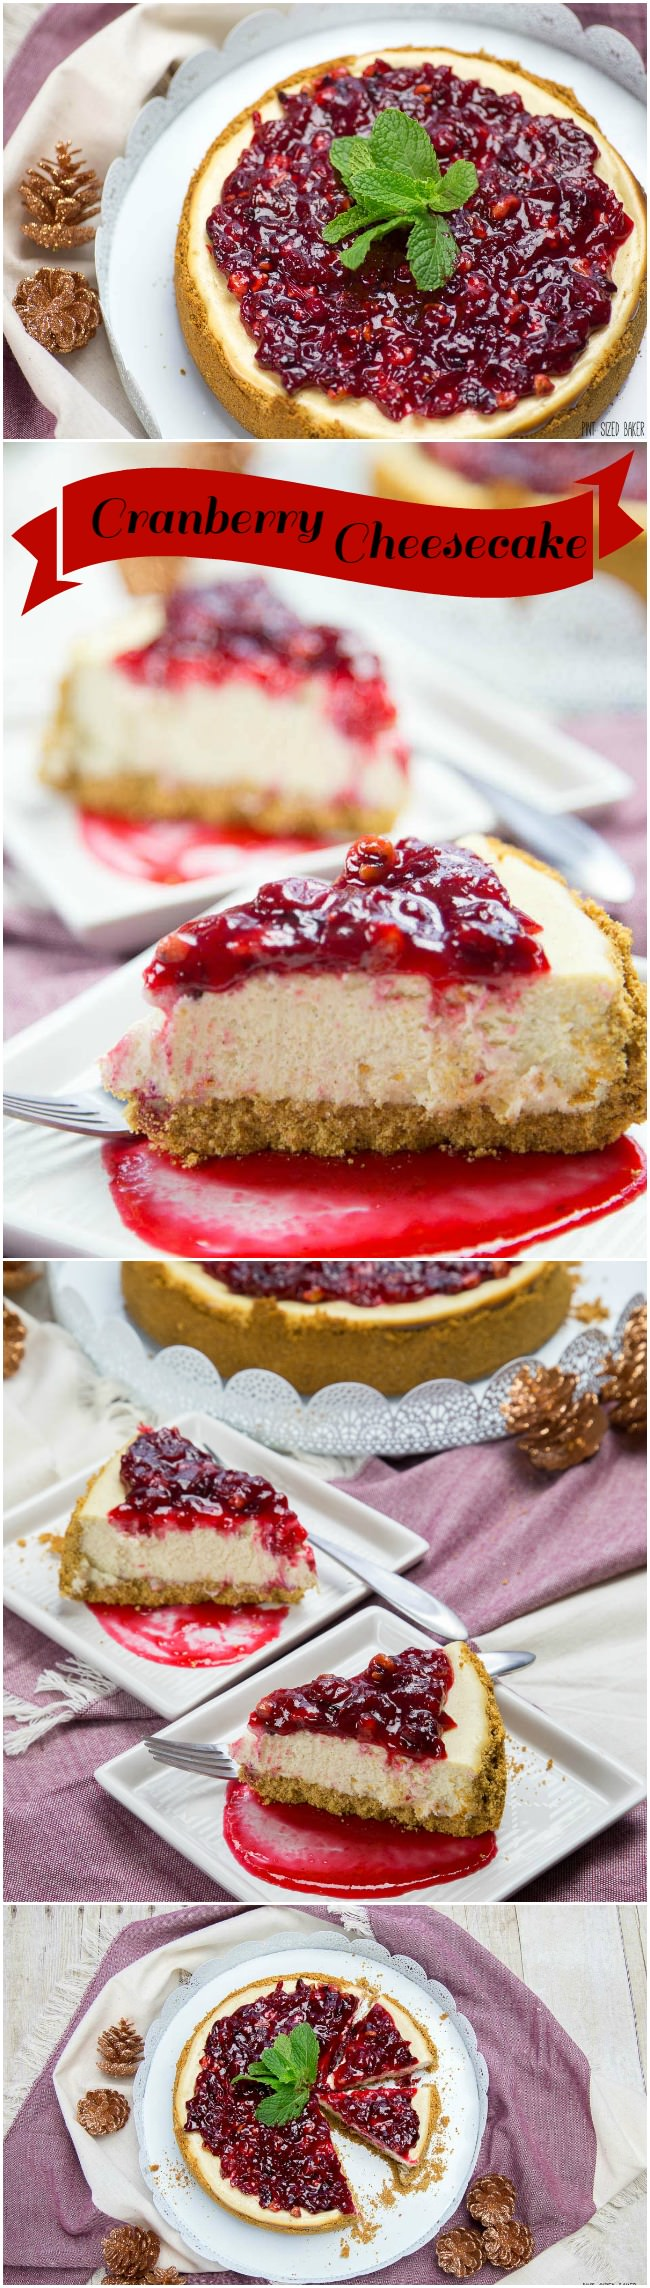 Cranberry Cheesecake is a Holiday Favorite. Bake your own cheesecake with this recipe or just add the topping to a premade one. It's the cranberry topping that's special.